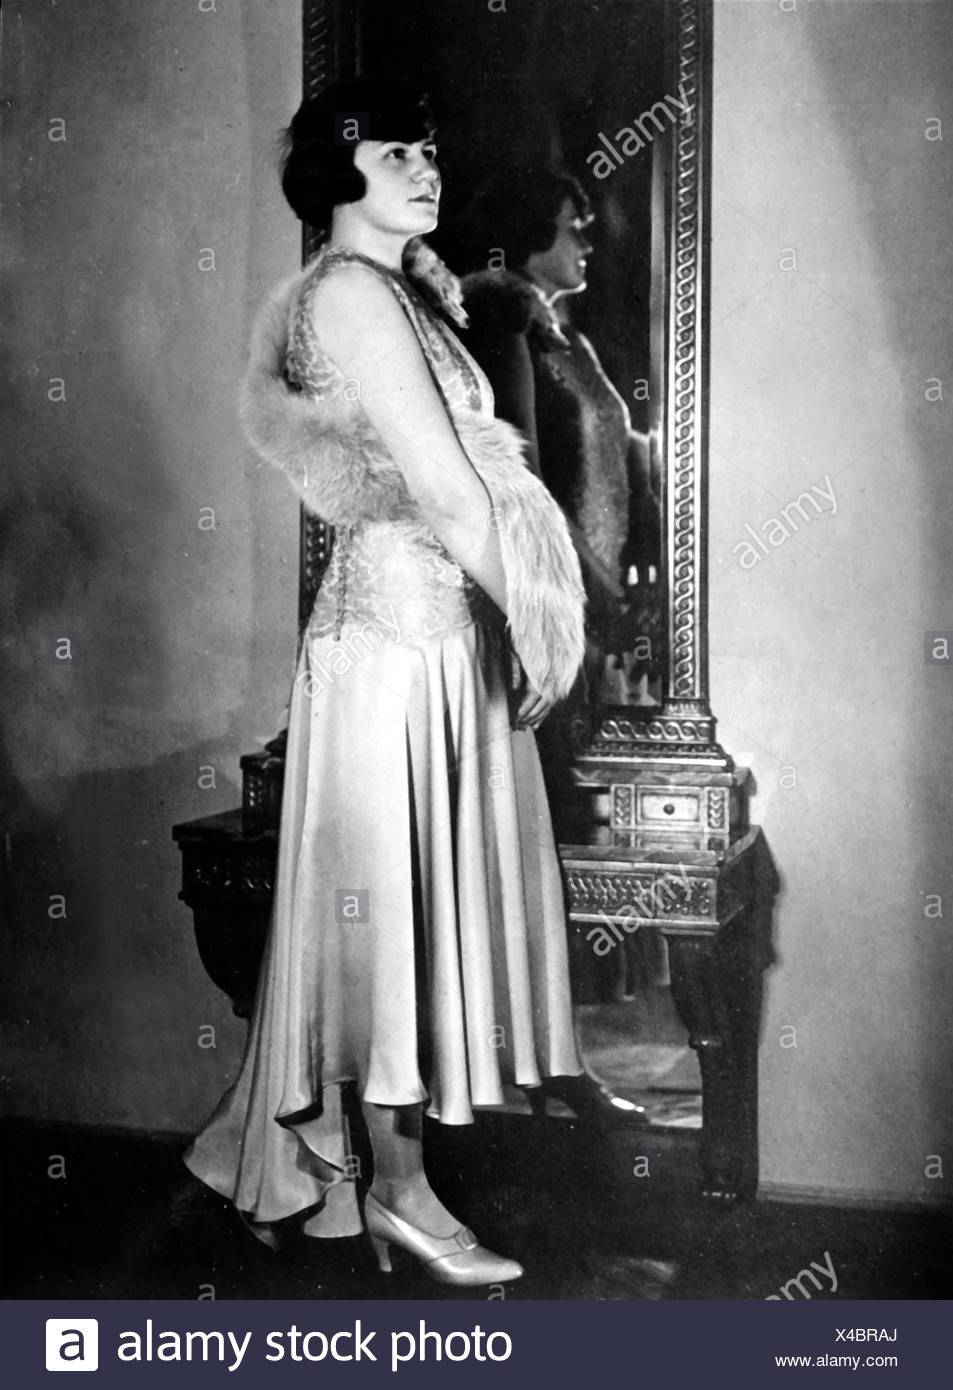 Raubal, Angela 'Geli', 4.6.1908 - 19.9.1931, niece by Adolf Hitler, full length, in front of the mirror, late 1920s, Additional-Rights-Clearances-NA - Stock Image